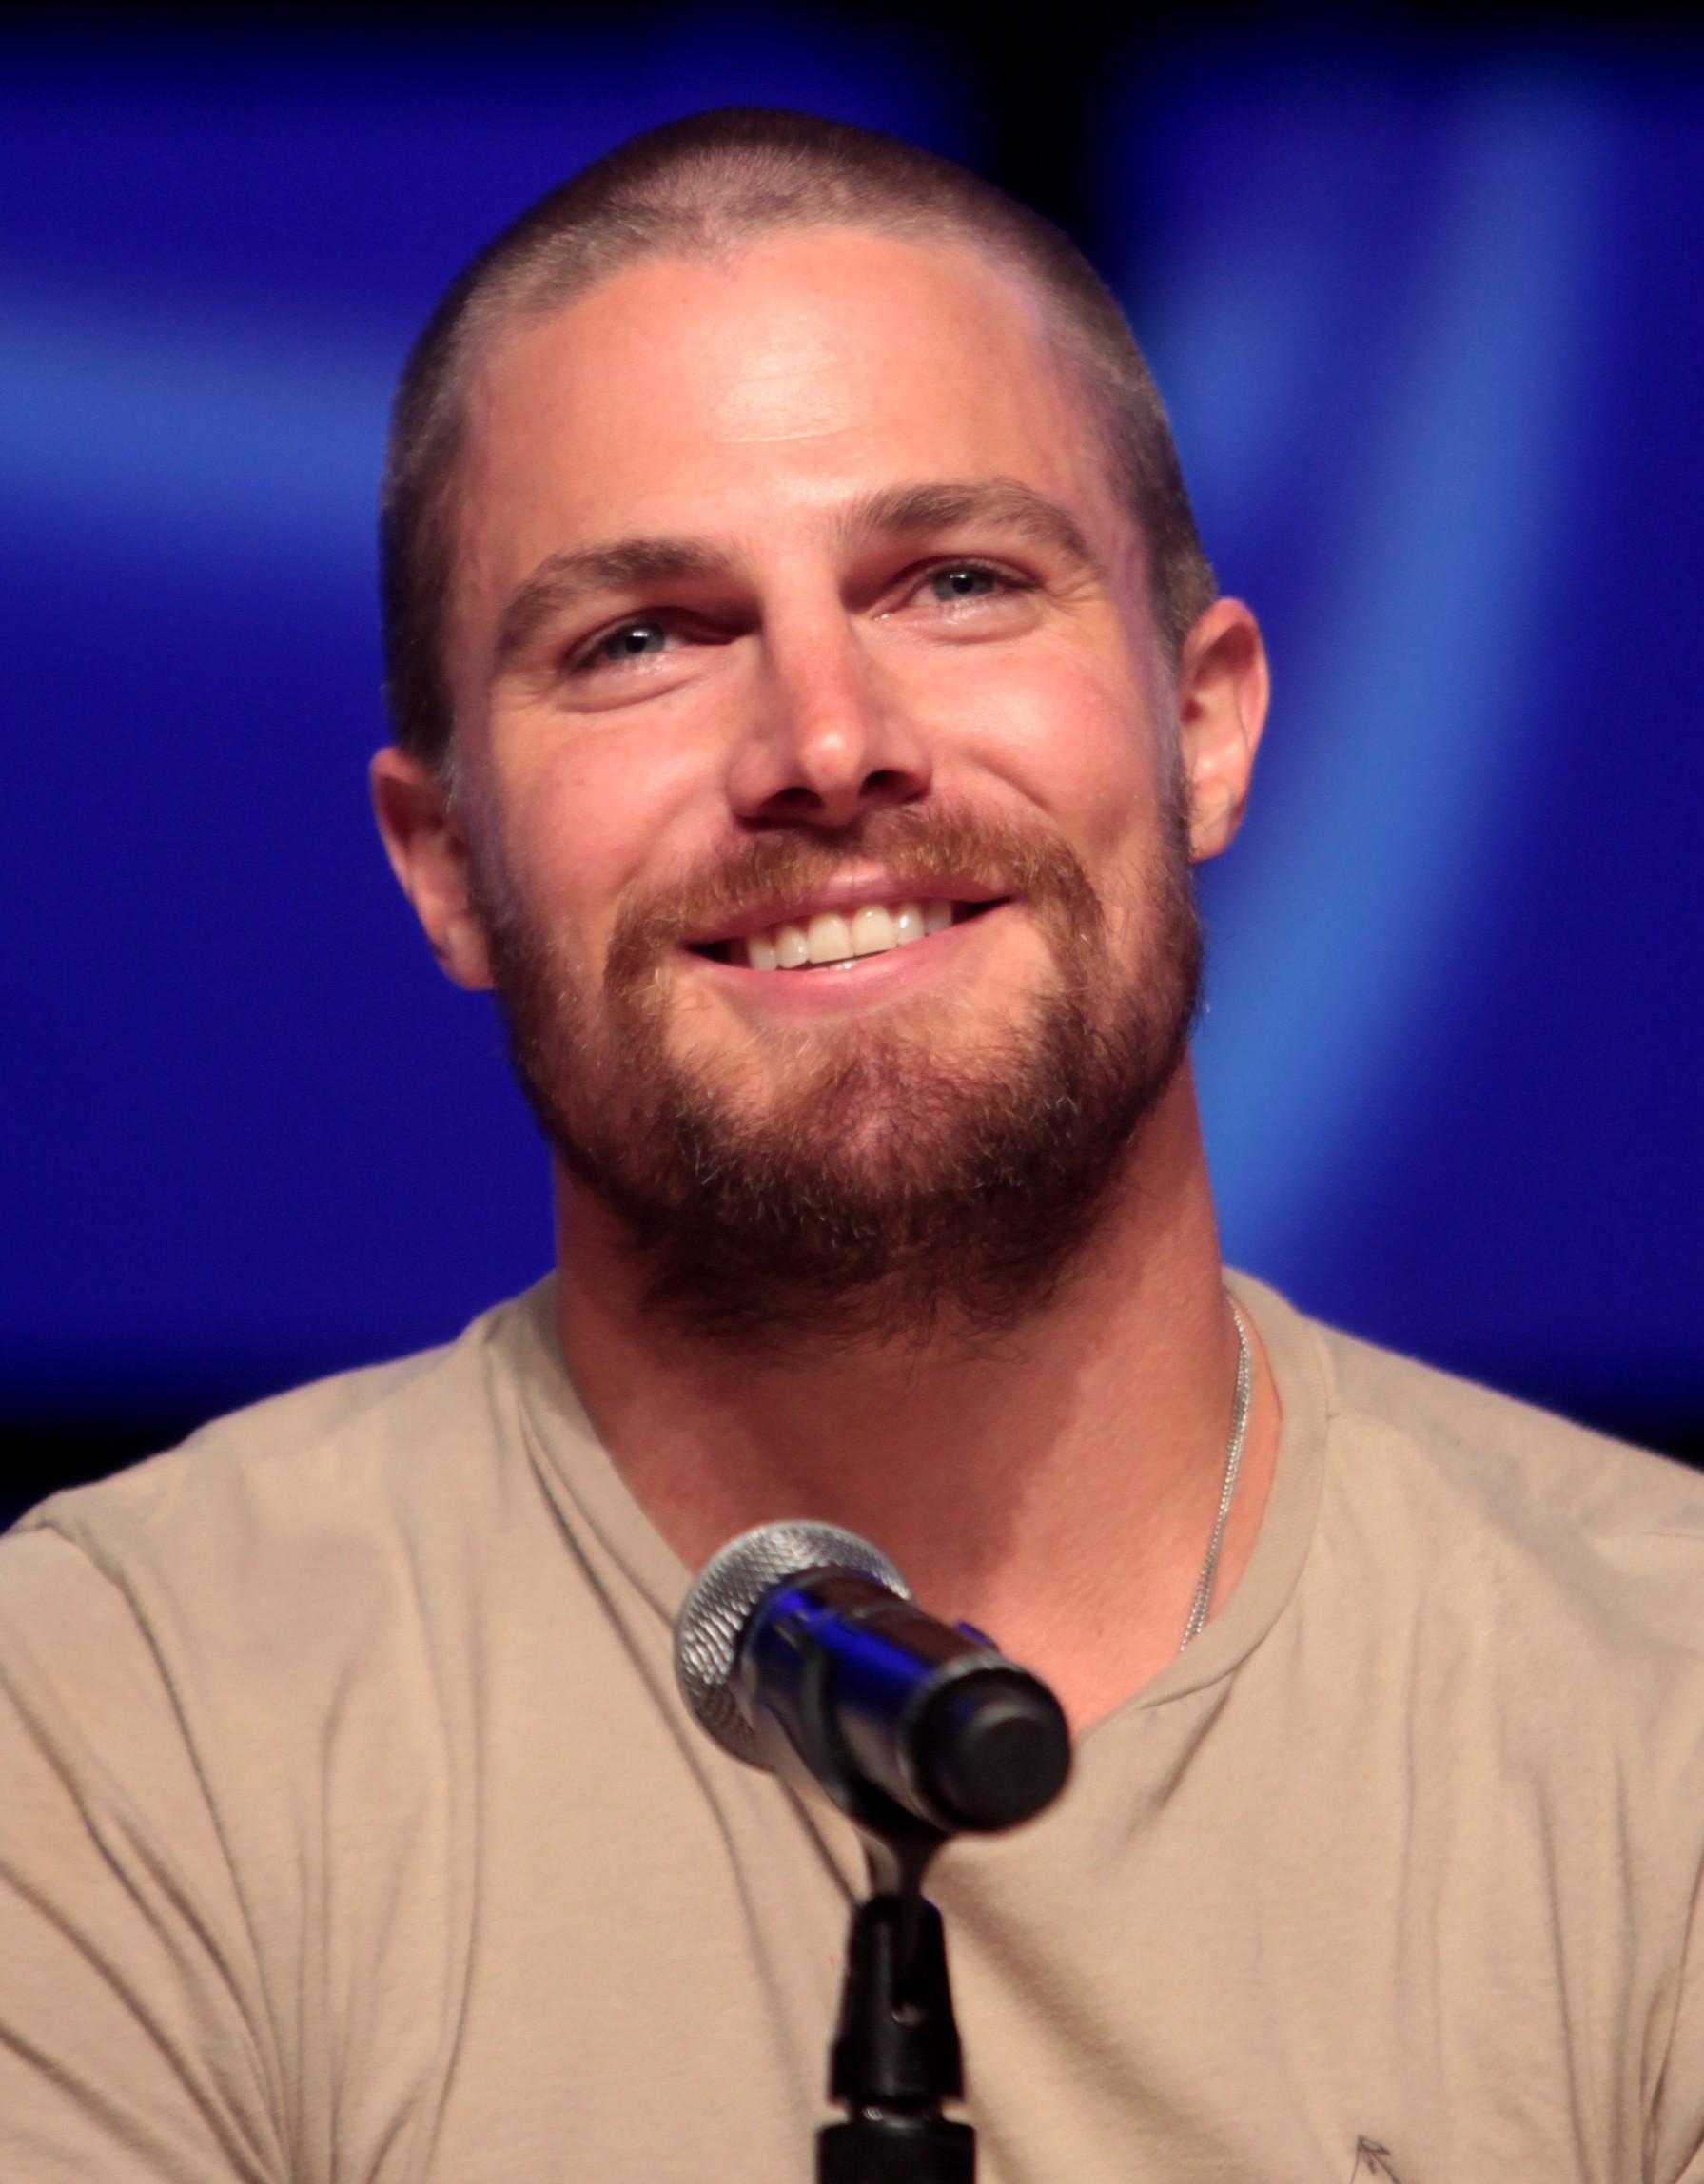 Stephen Amell Stephen Amell Wikipedia the free encyclopedia